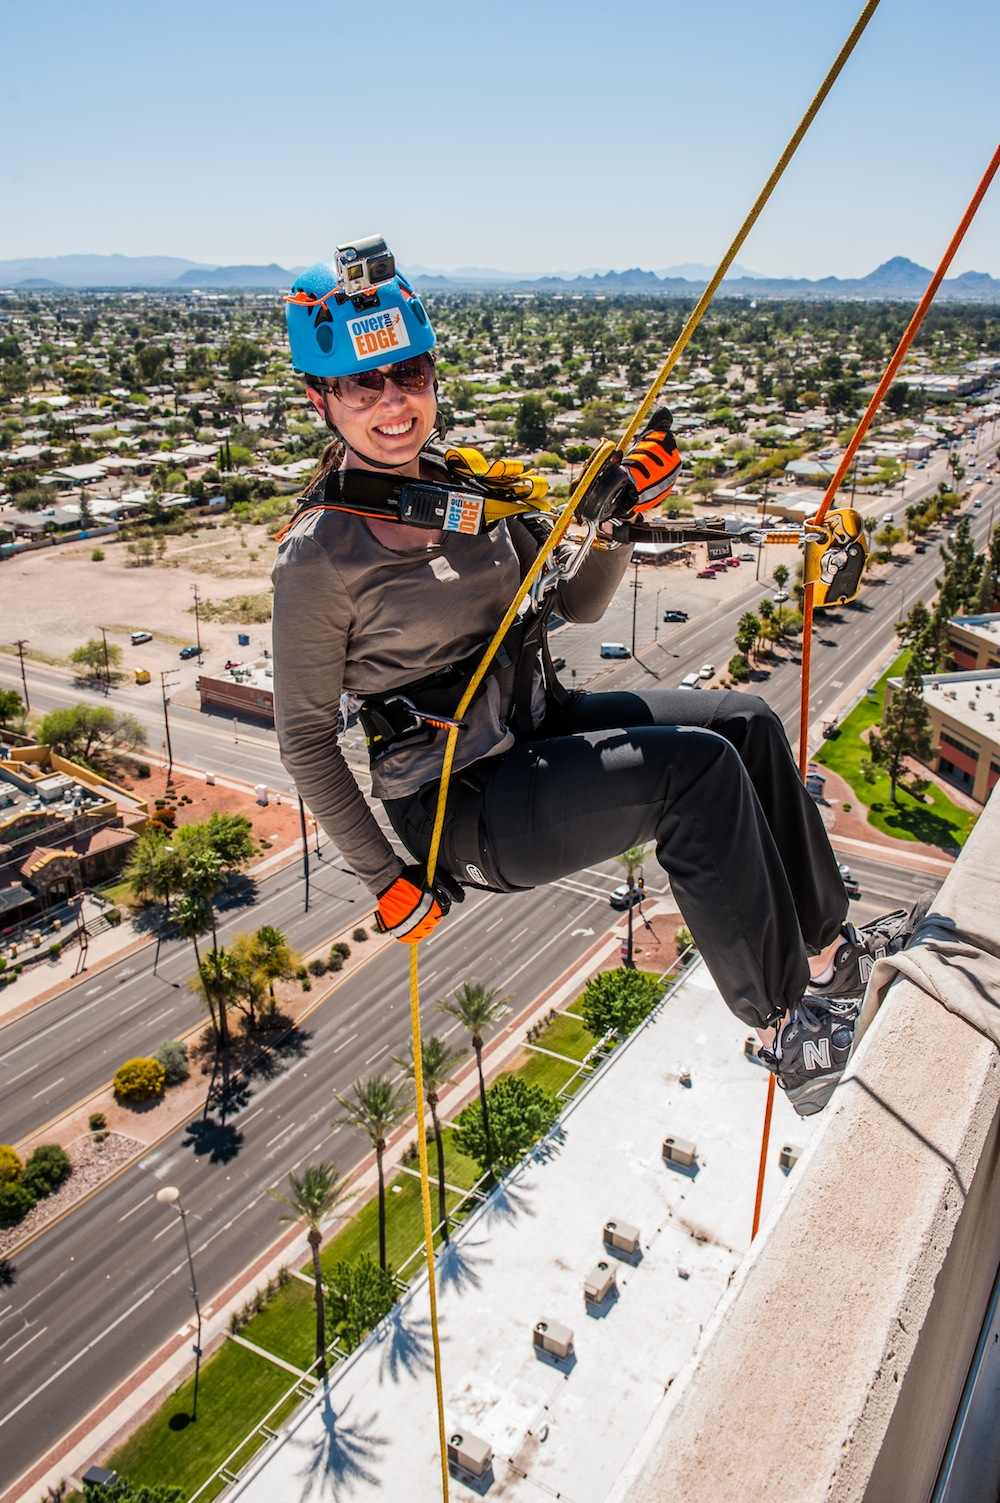 Over the edge 5